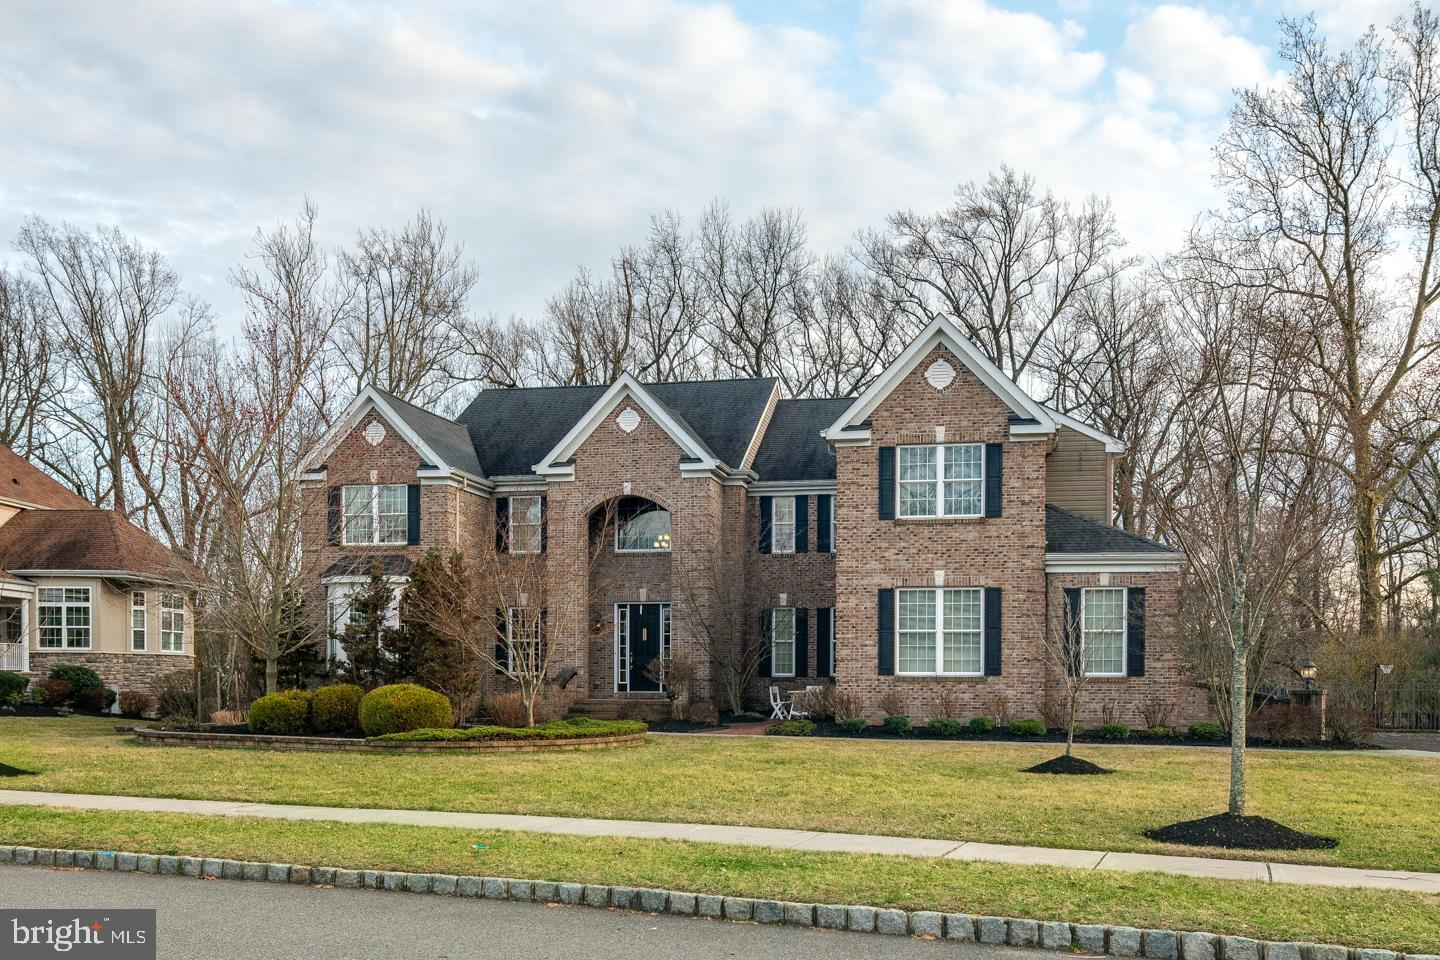 506 LEGENDS CT, MICKLETON, NJ 08056